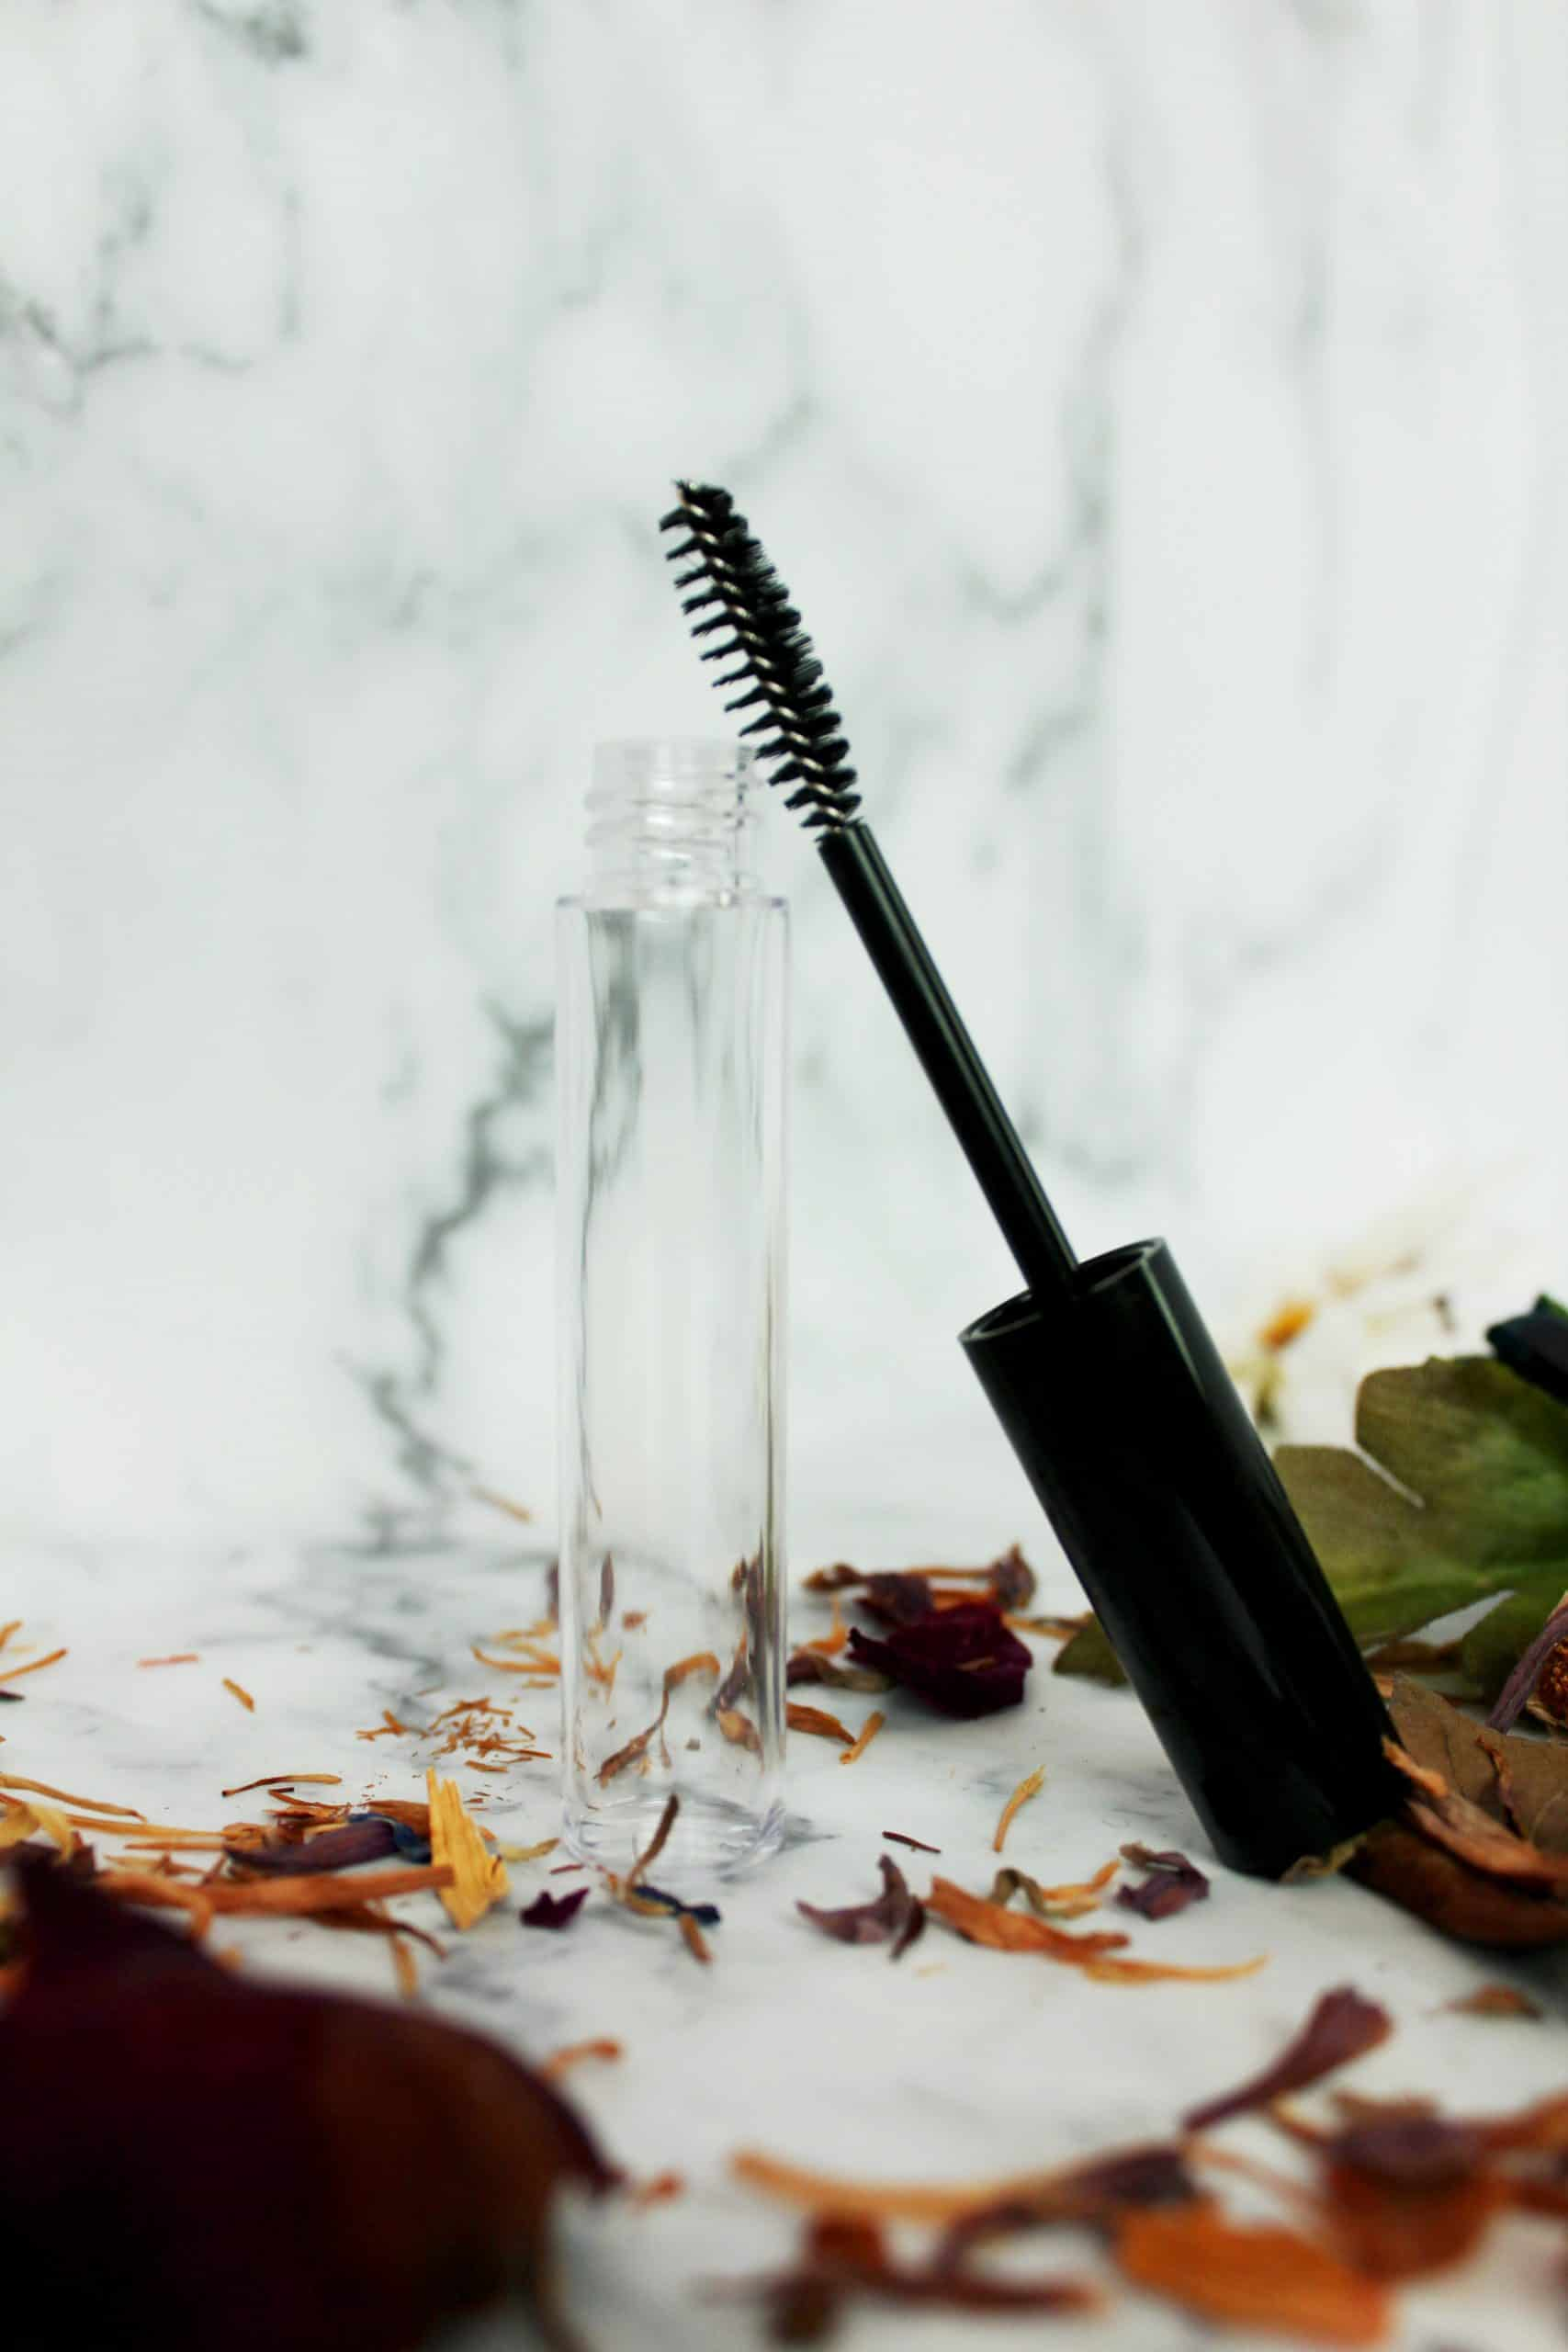 DIY Eyelash Serum Recipe for Natural Lash Growth